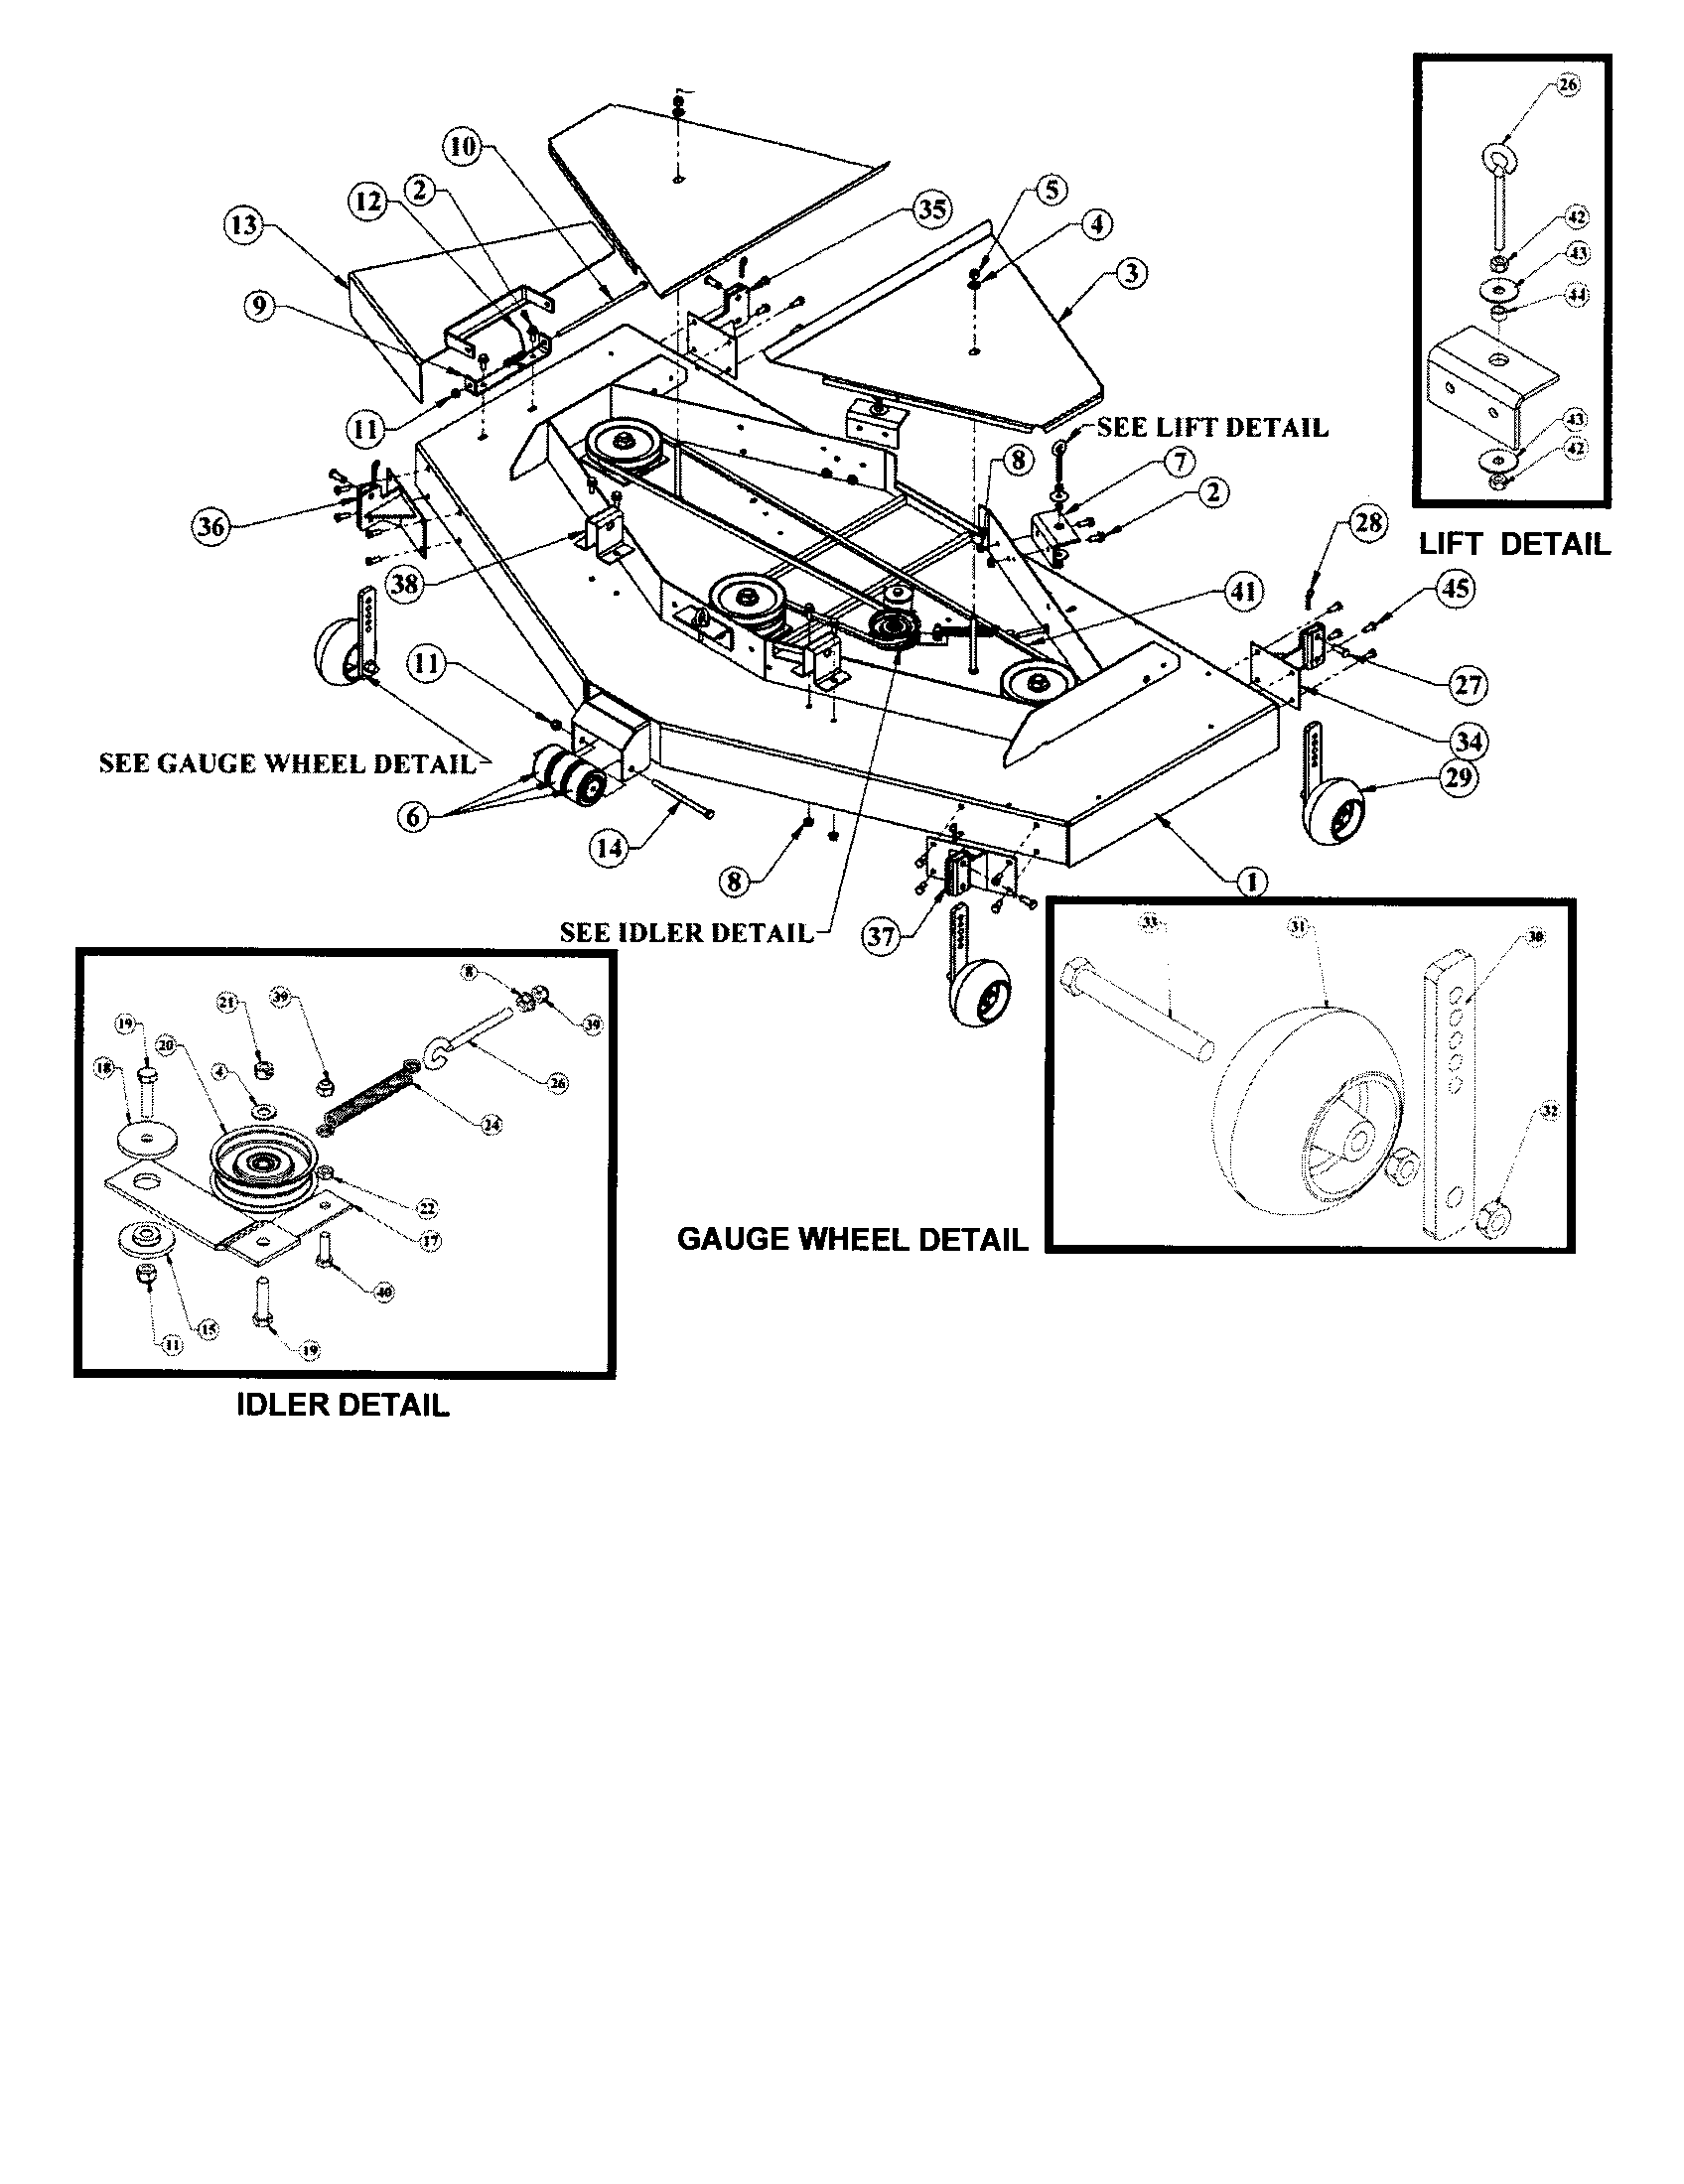 hight resolution of scott s1642 lawn tractor wiring diagram